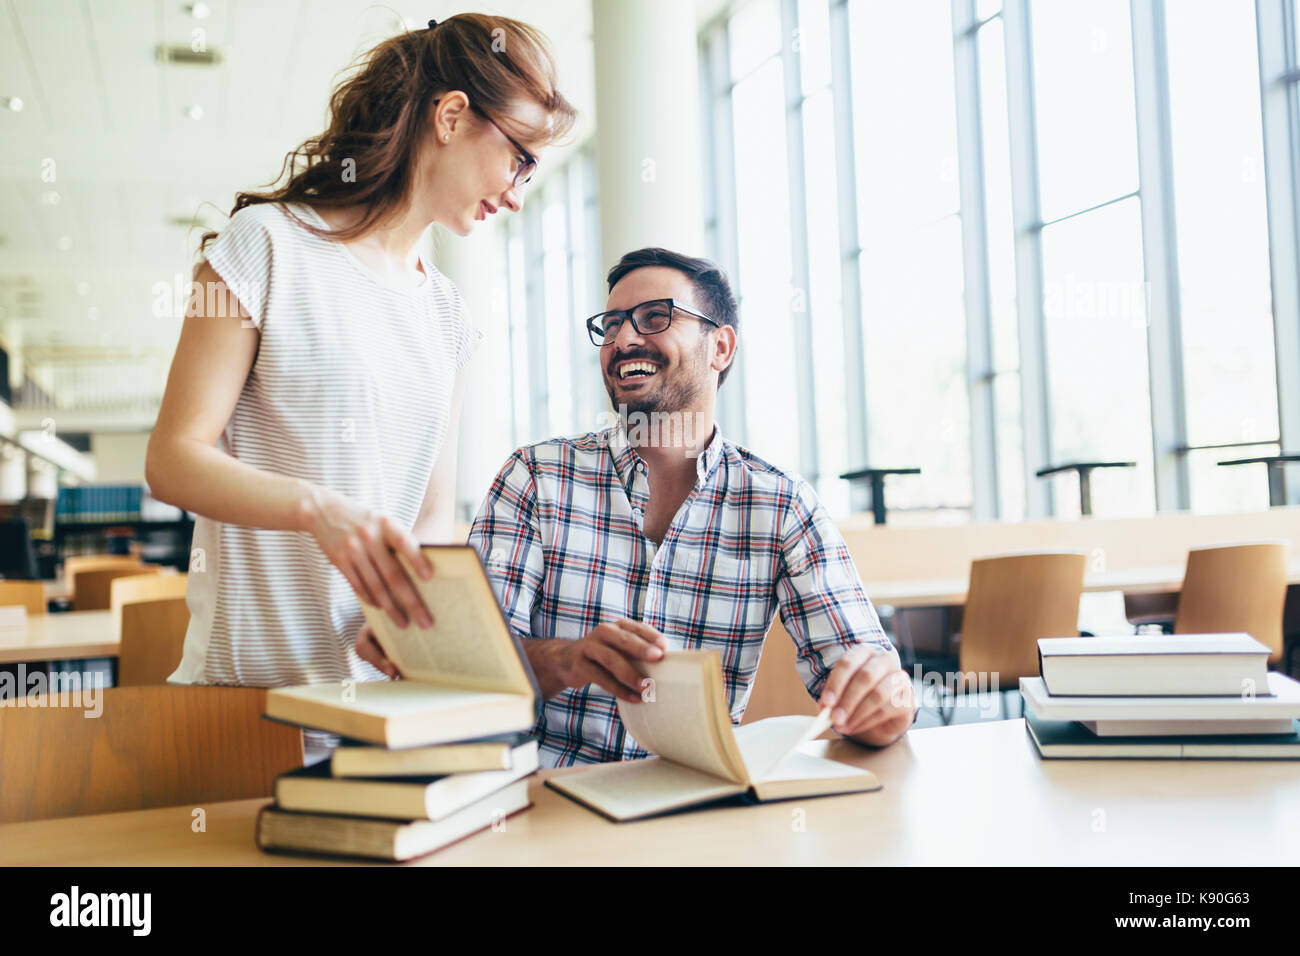 Young attractive students spending time in library - Stock Image